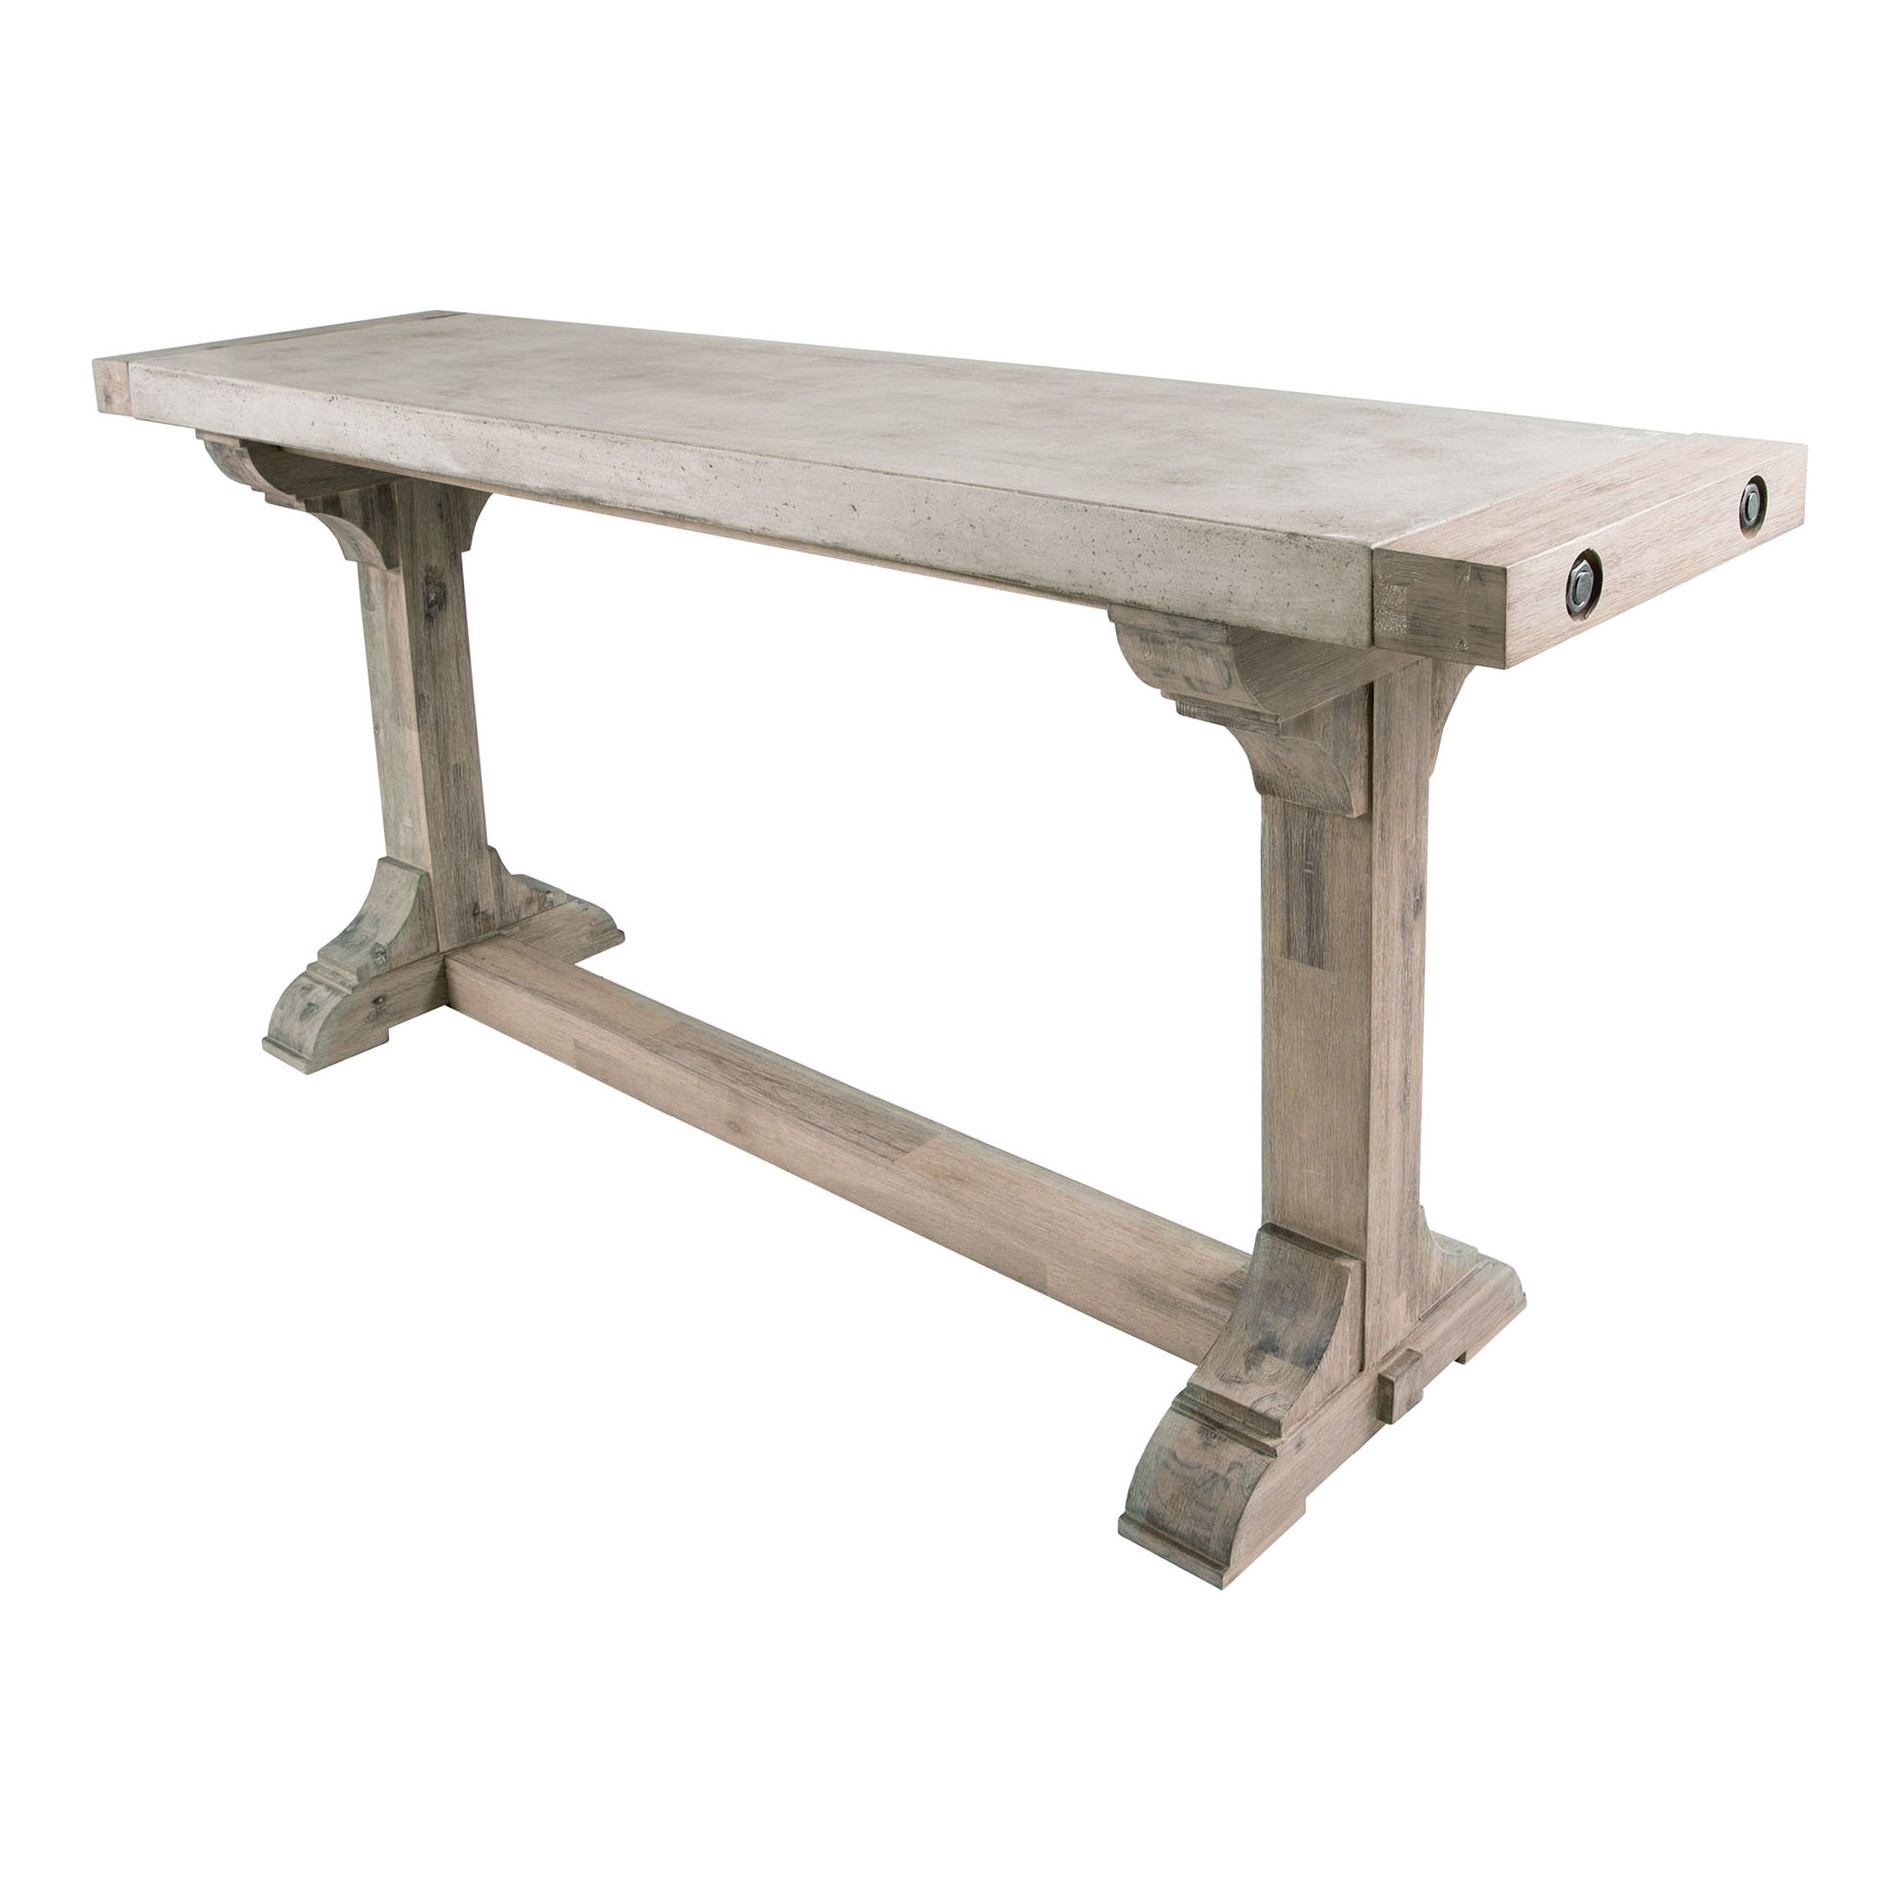 Dimond Home 157 020 Pirate Concrete & Wood Dining Table w Waxed